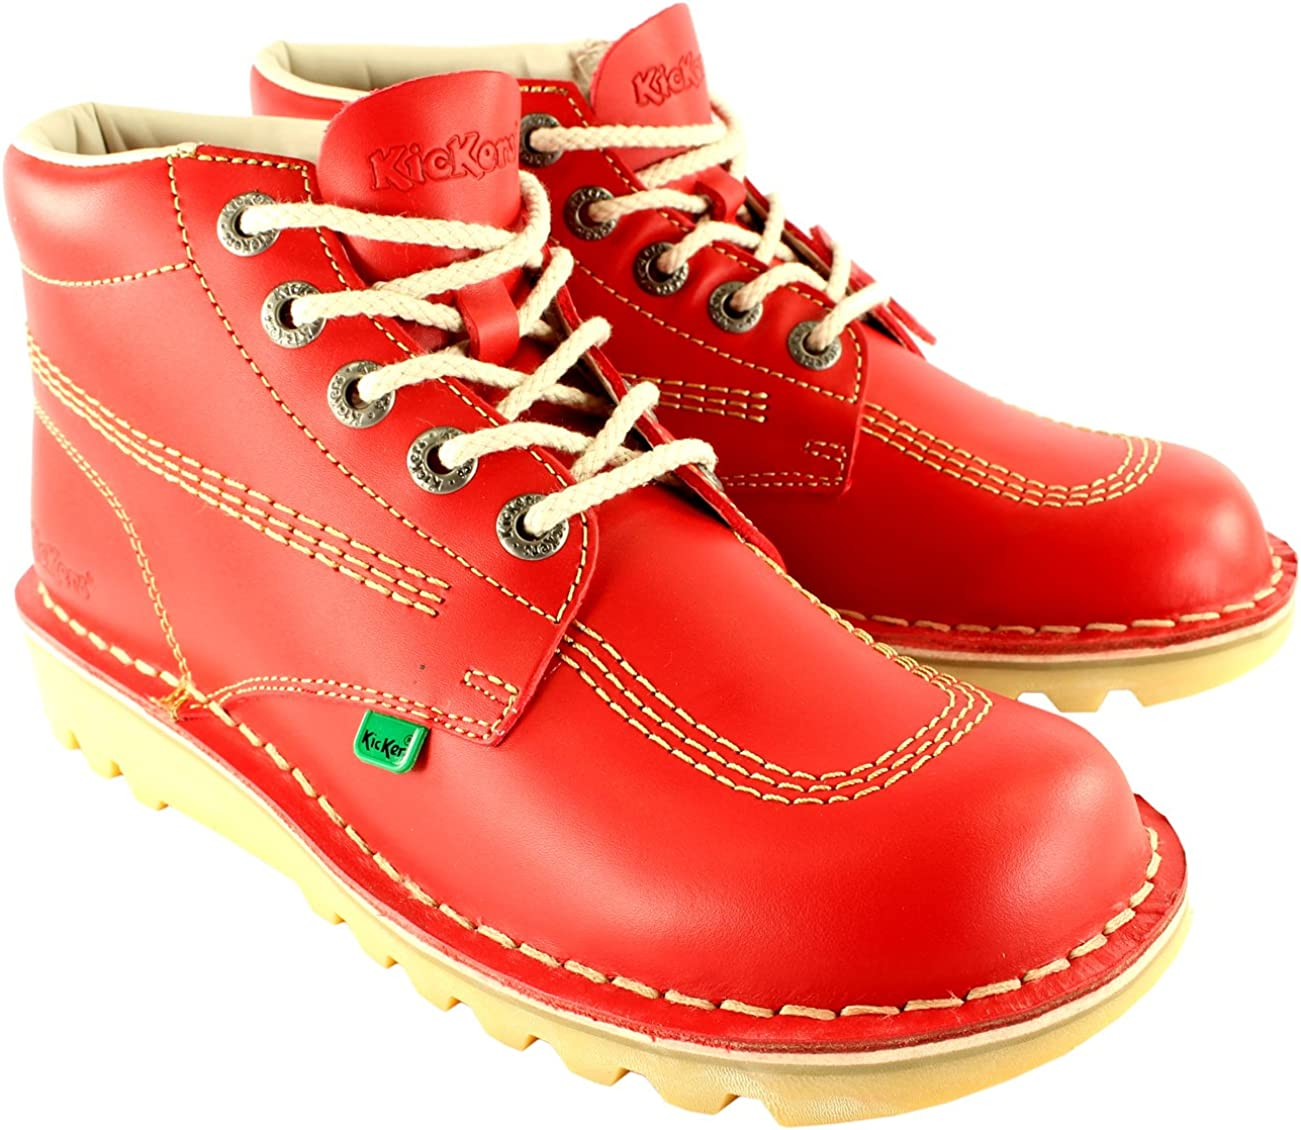 Womens Kickers Kick Hi Classic Leather Work Ranking TOP1 Boots Office online shopping S Ankle